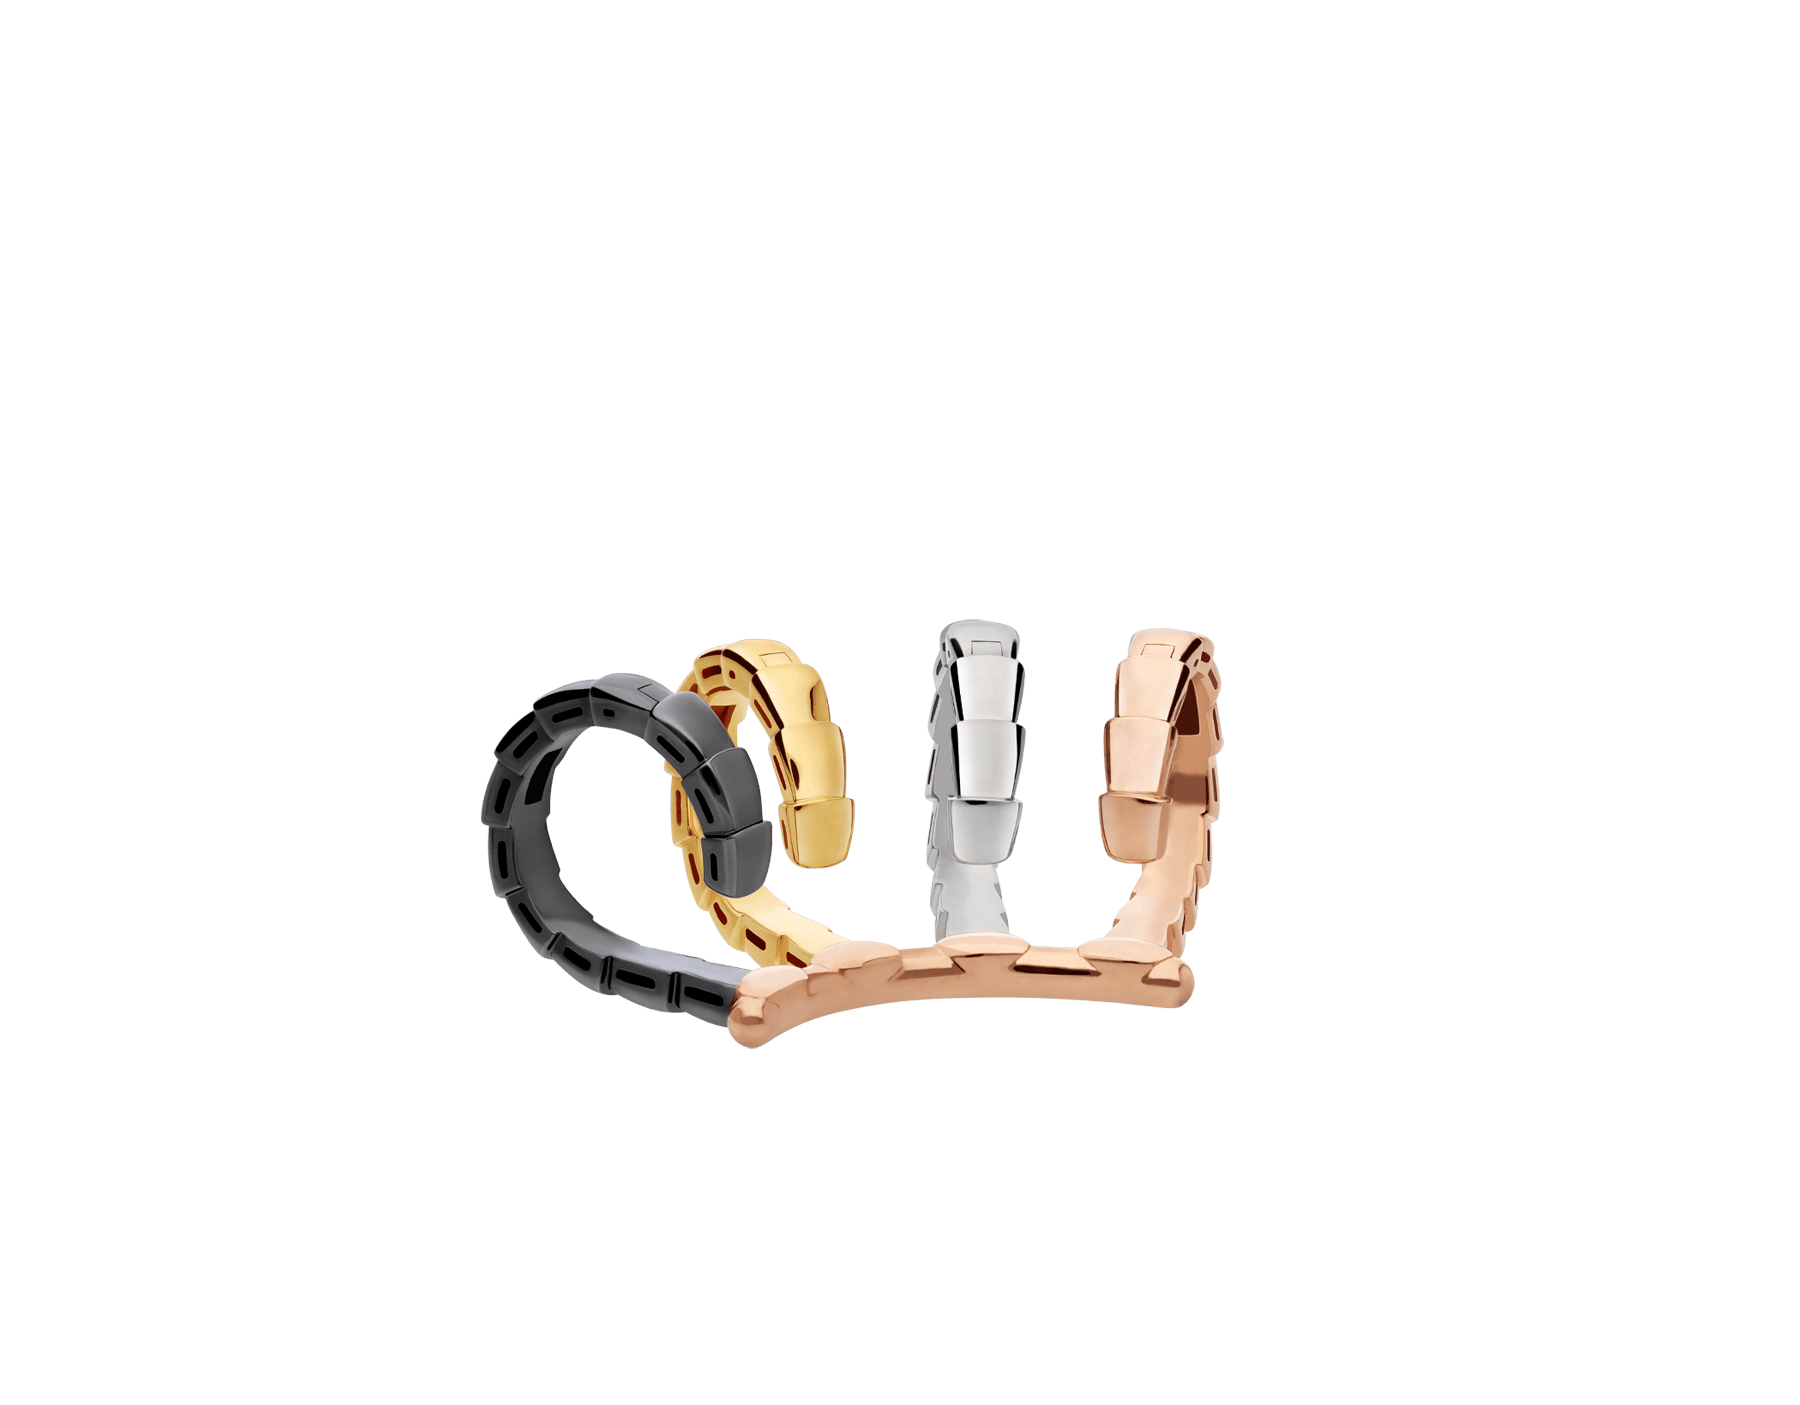 Serpenti Viper single earring in 18 kt rose, white and yellow gold, and black rhodium 356173 image 2